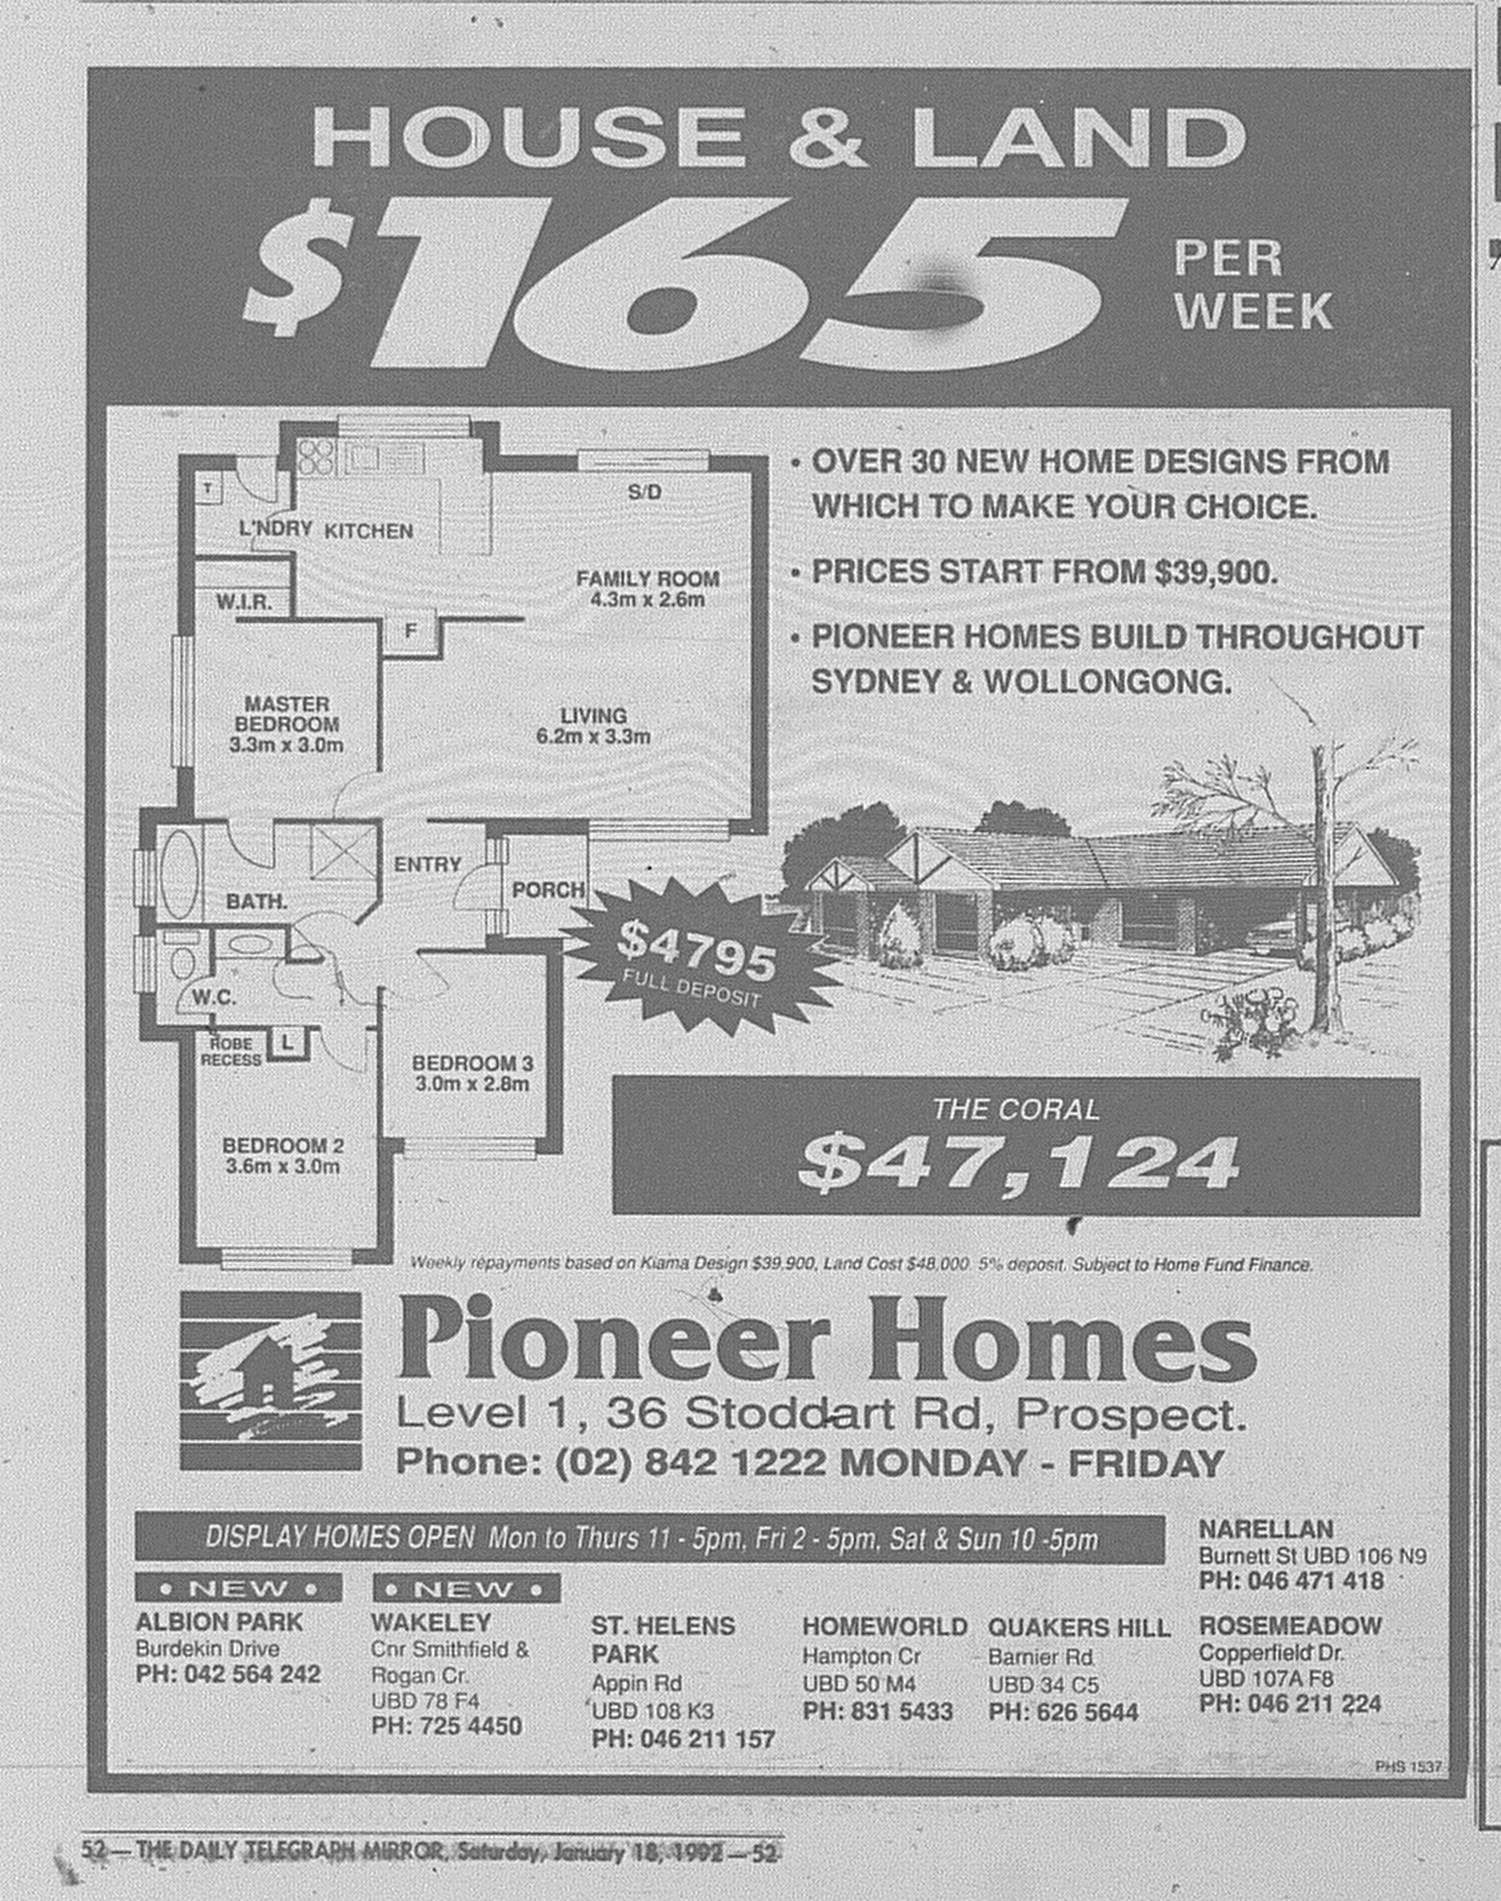 Pioneer Homes Ad January 18 1992 Daily Telegraph 52